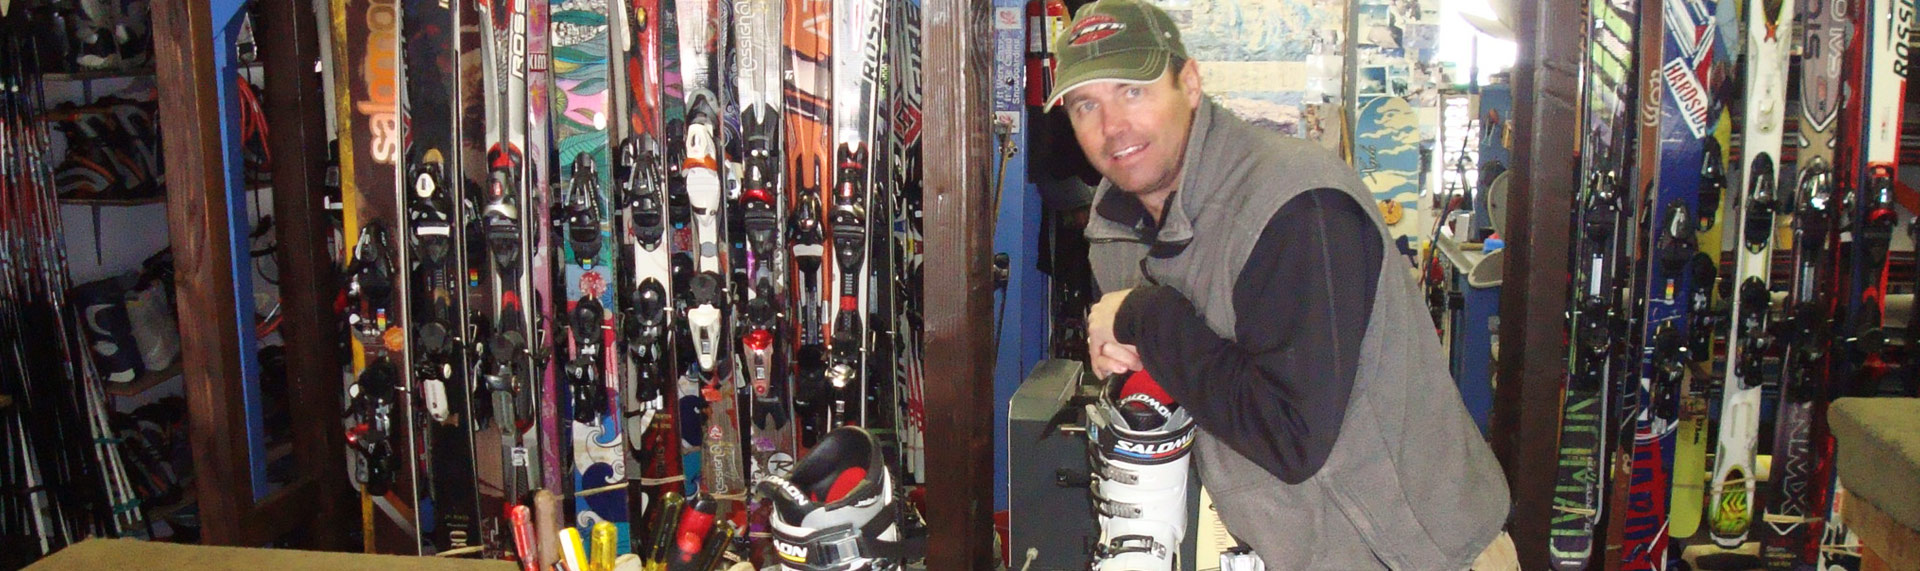 Rob - Ski Renter - Mammoth Lakes Ca